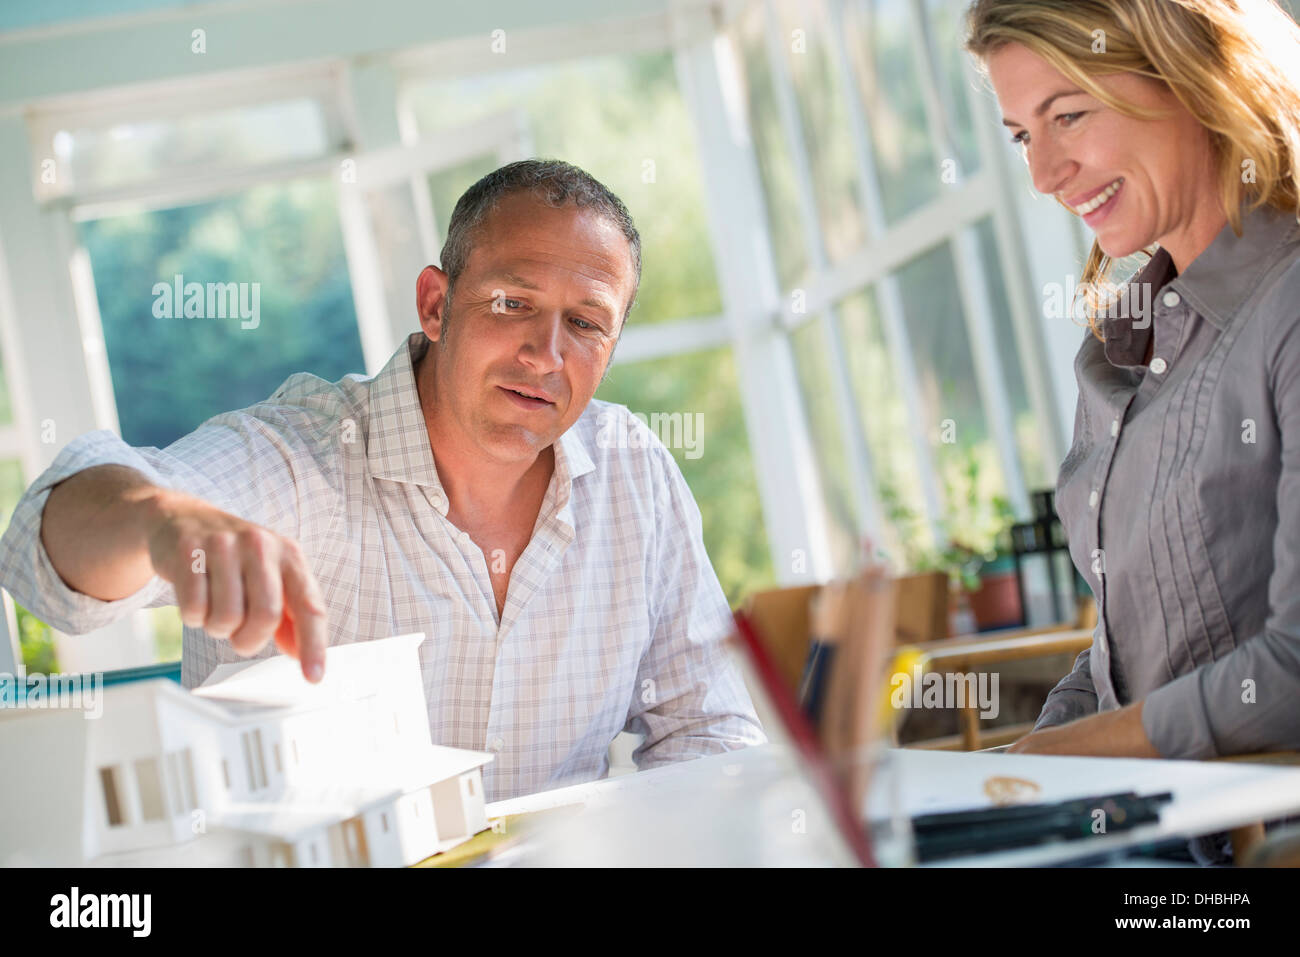 A farmhouse kitchen. A model of a house on the table. Designing a house. A couple. - Stock Image